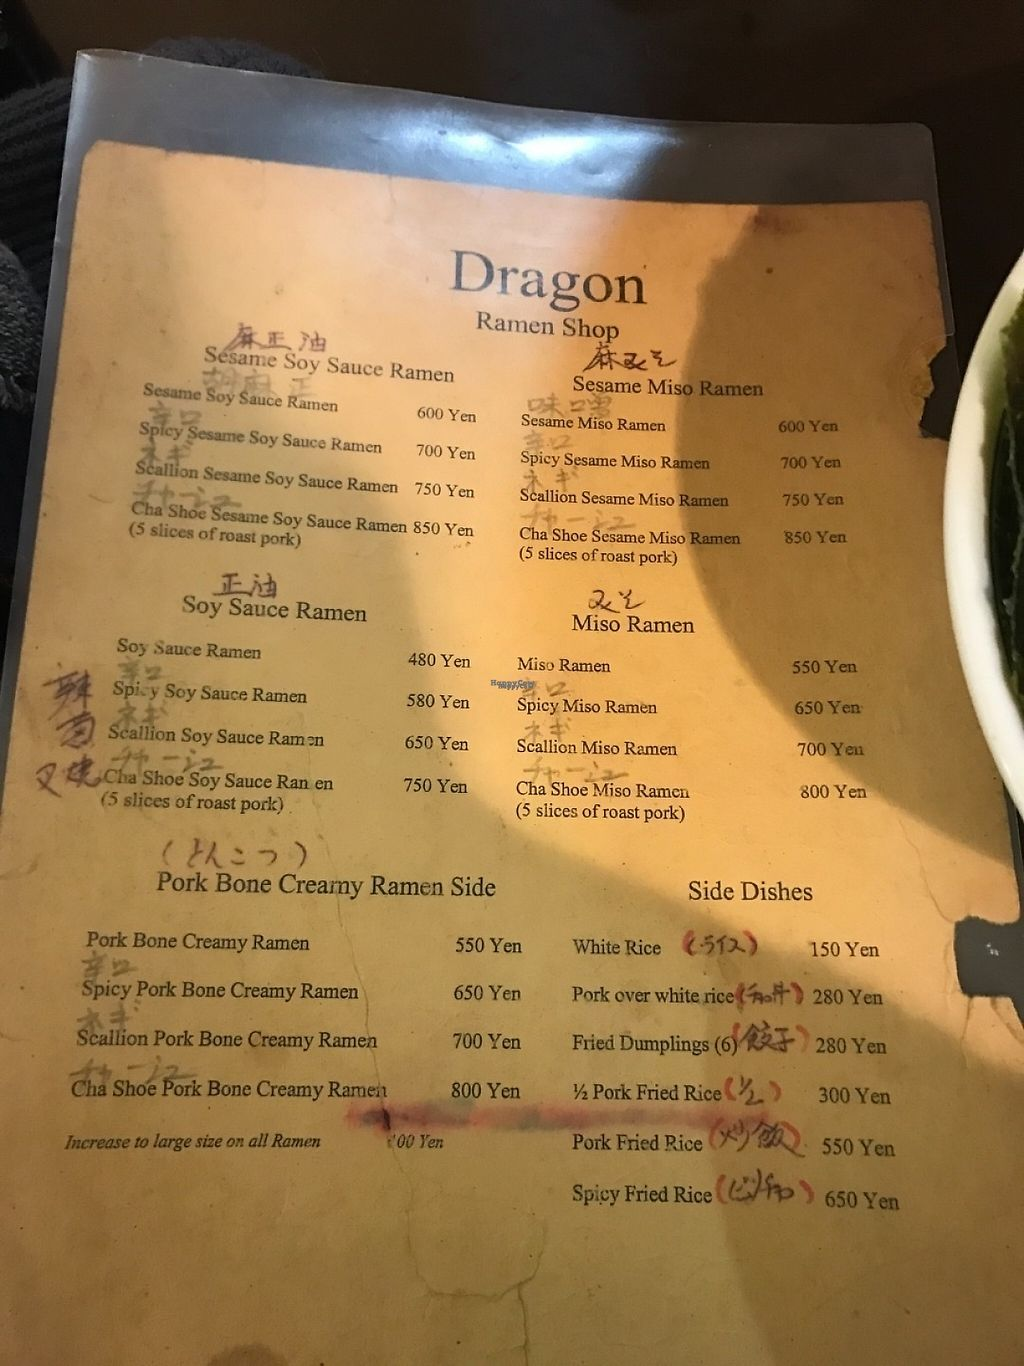 "Photo of Dragon Ramen Shop - maybe closed  by <a href=""/members/profile/sunnylynn96"">sunnylynn96</a> <br/>Vegan dishes that can be found are different forms of miso ramen, soy ramen, and bean curd  <br/> January 30, 2017  - <a href='/contact/abuse/image/86249/219482'>Report</a>"